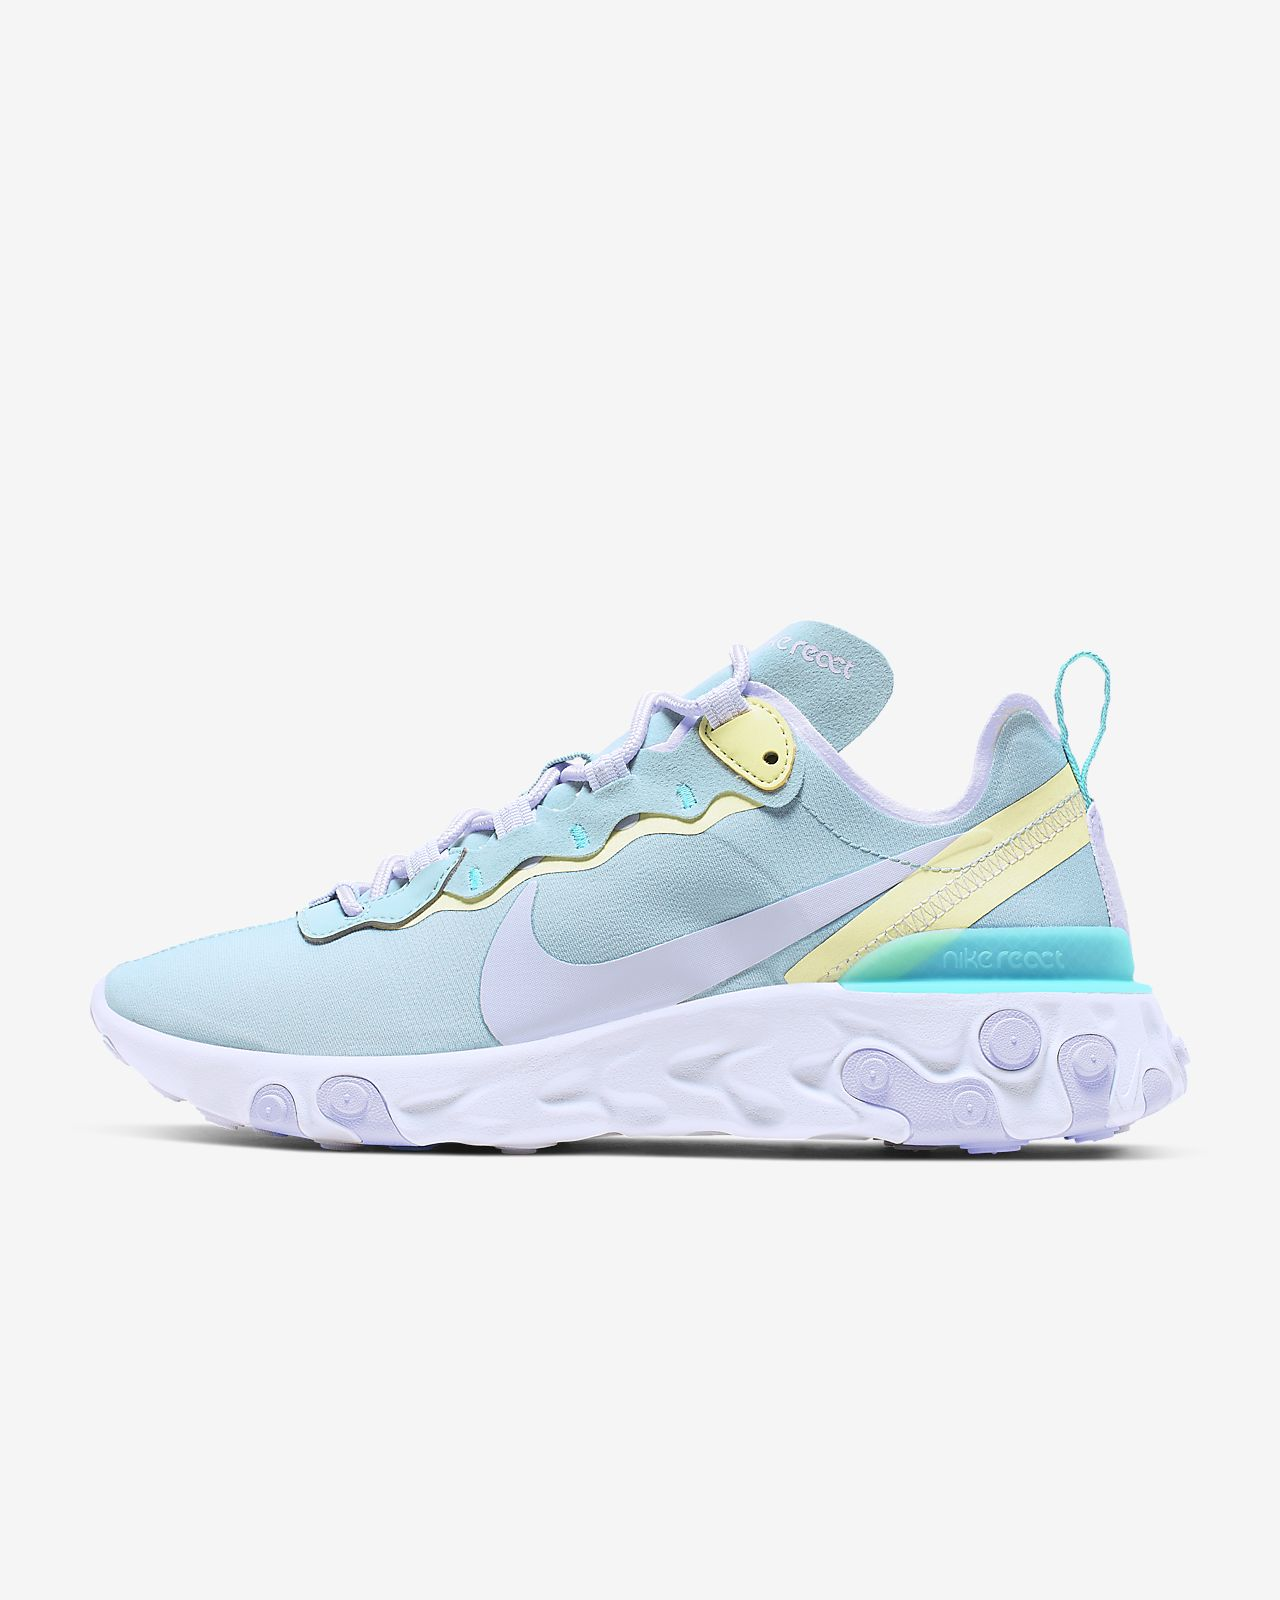 Nike Air Max Thea Women's Shoe Cream